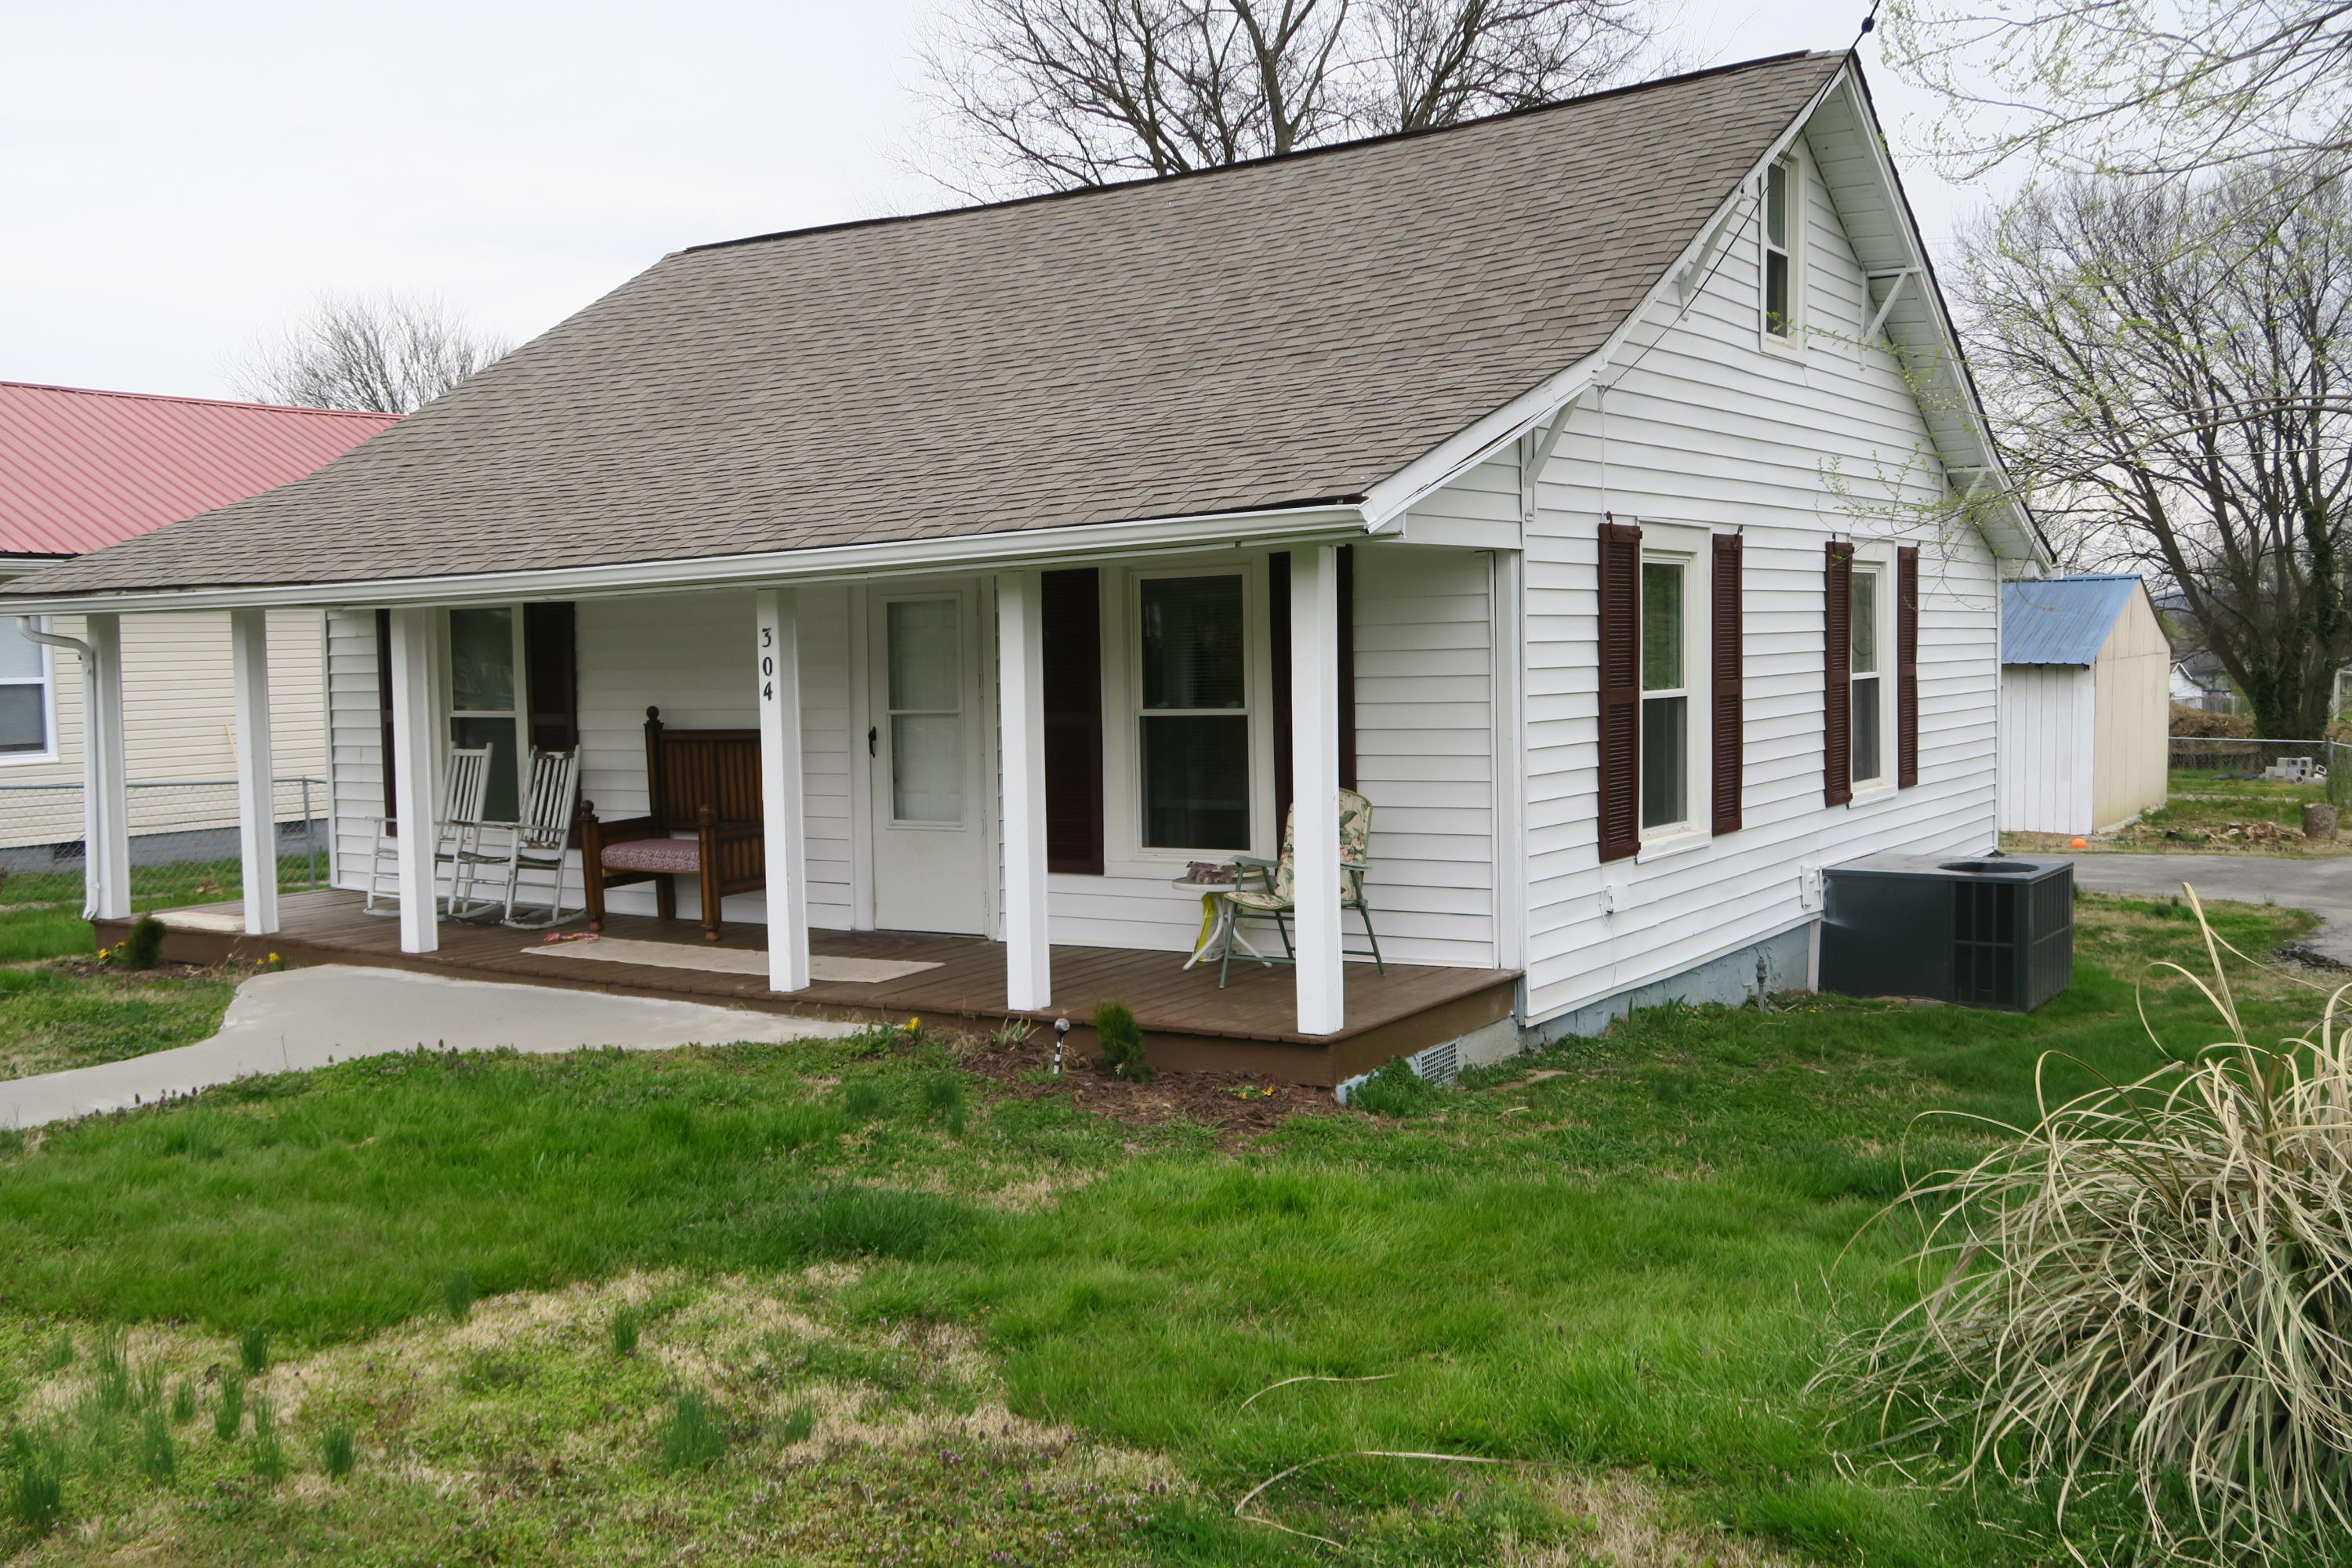 304 Mcginley St, Maryville, Tennessee 37804, 2 Bedrooms Bedrooms, ,1 BathroomBathrooms,Single Family,For Sale,Mcginley,1091594